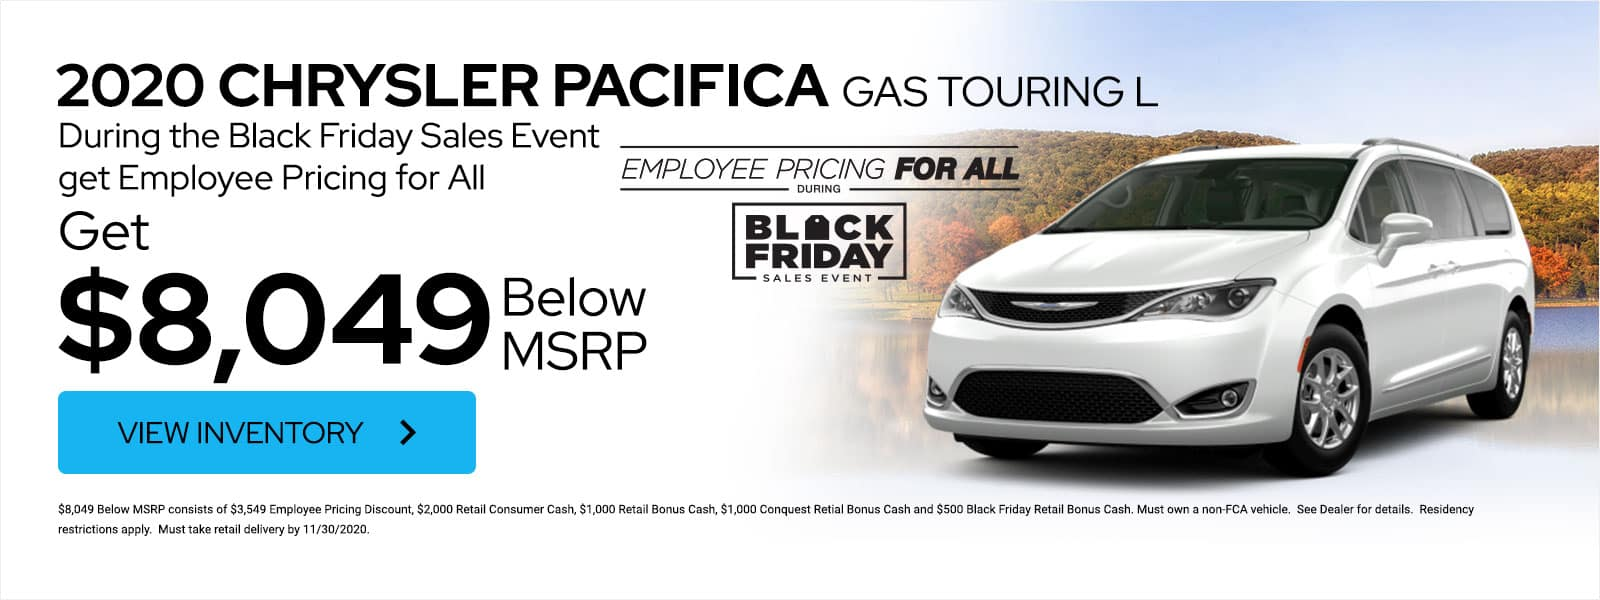 MABC_Banners_1600x600_2020-11_509603_20-chrysler-pacifica-gas